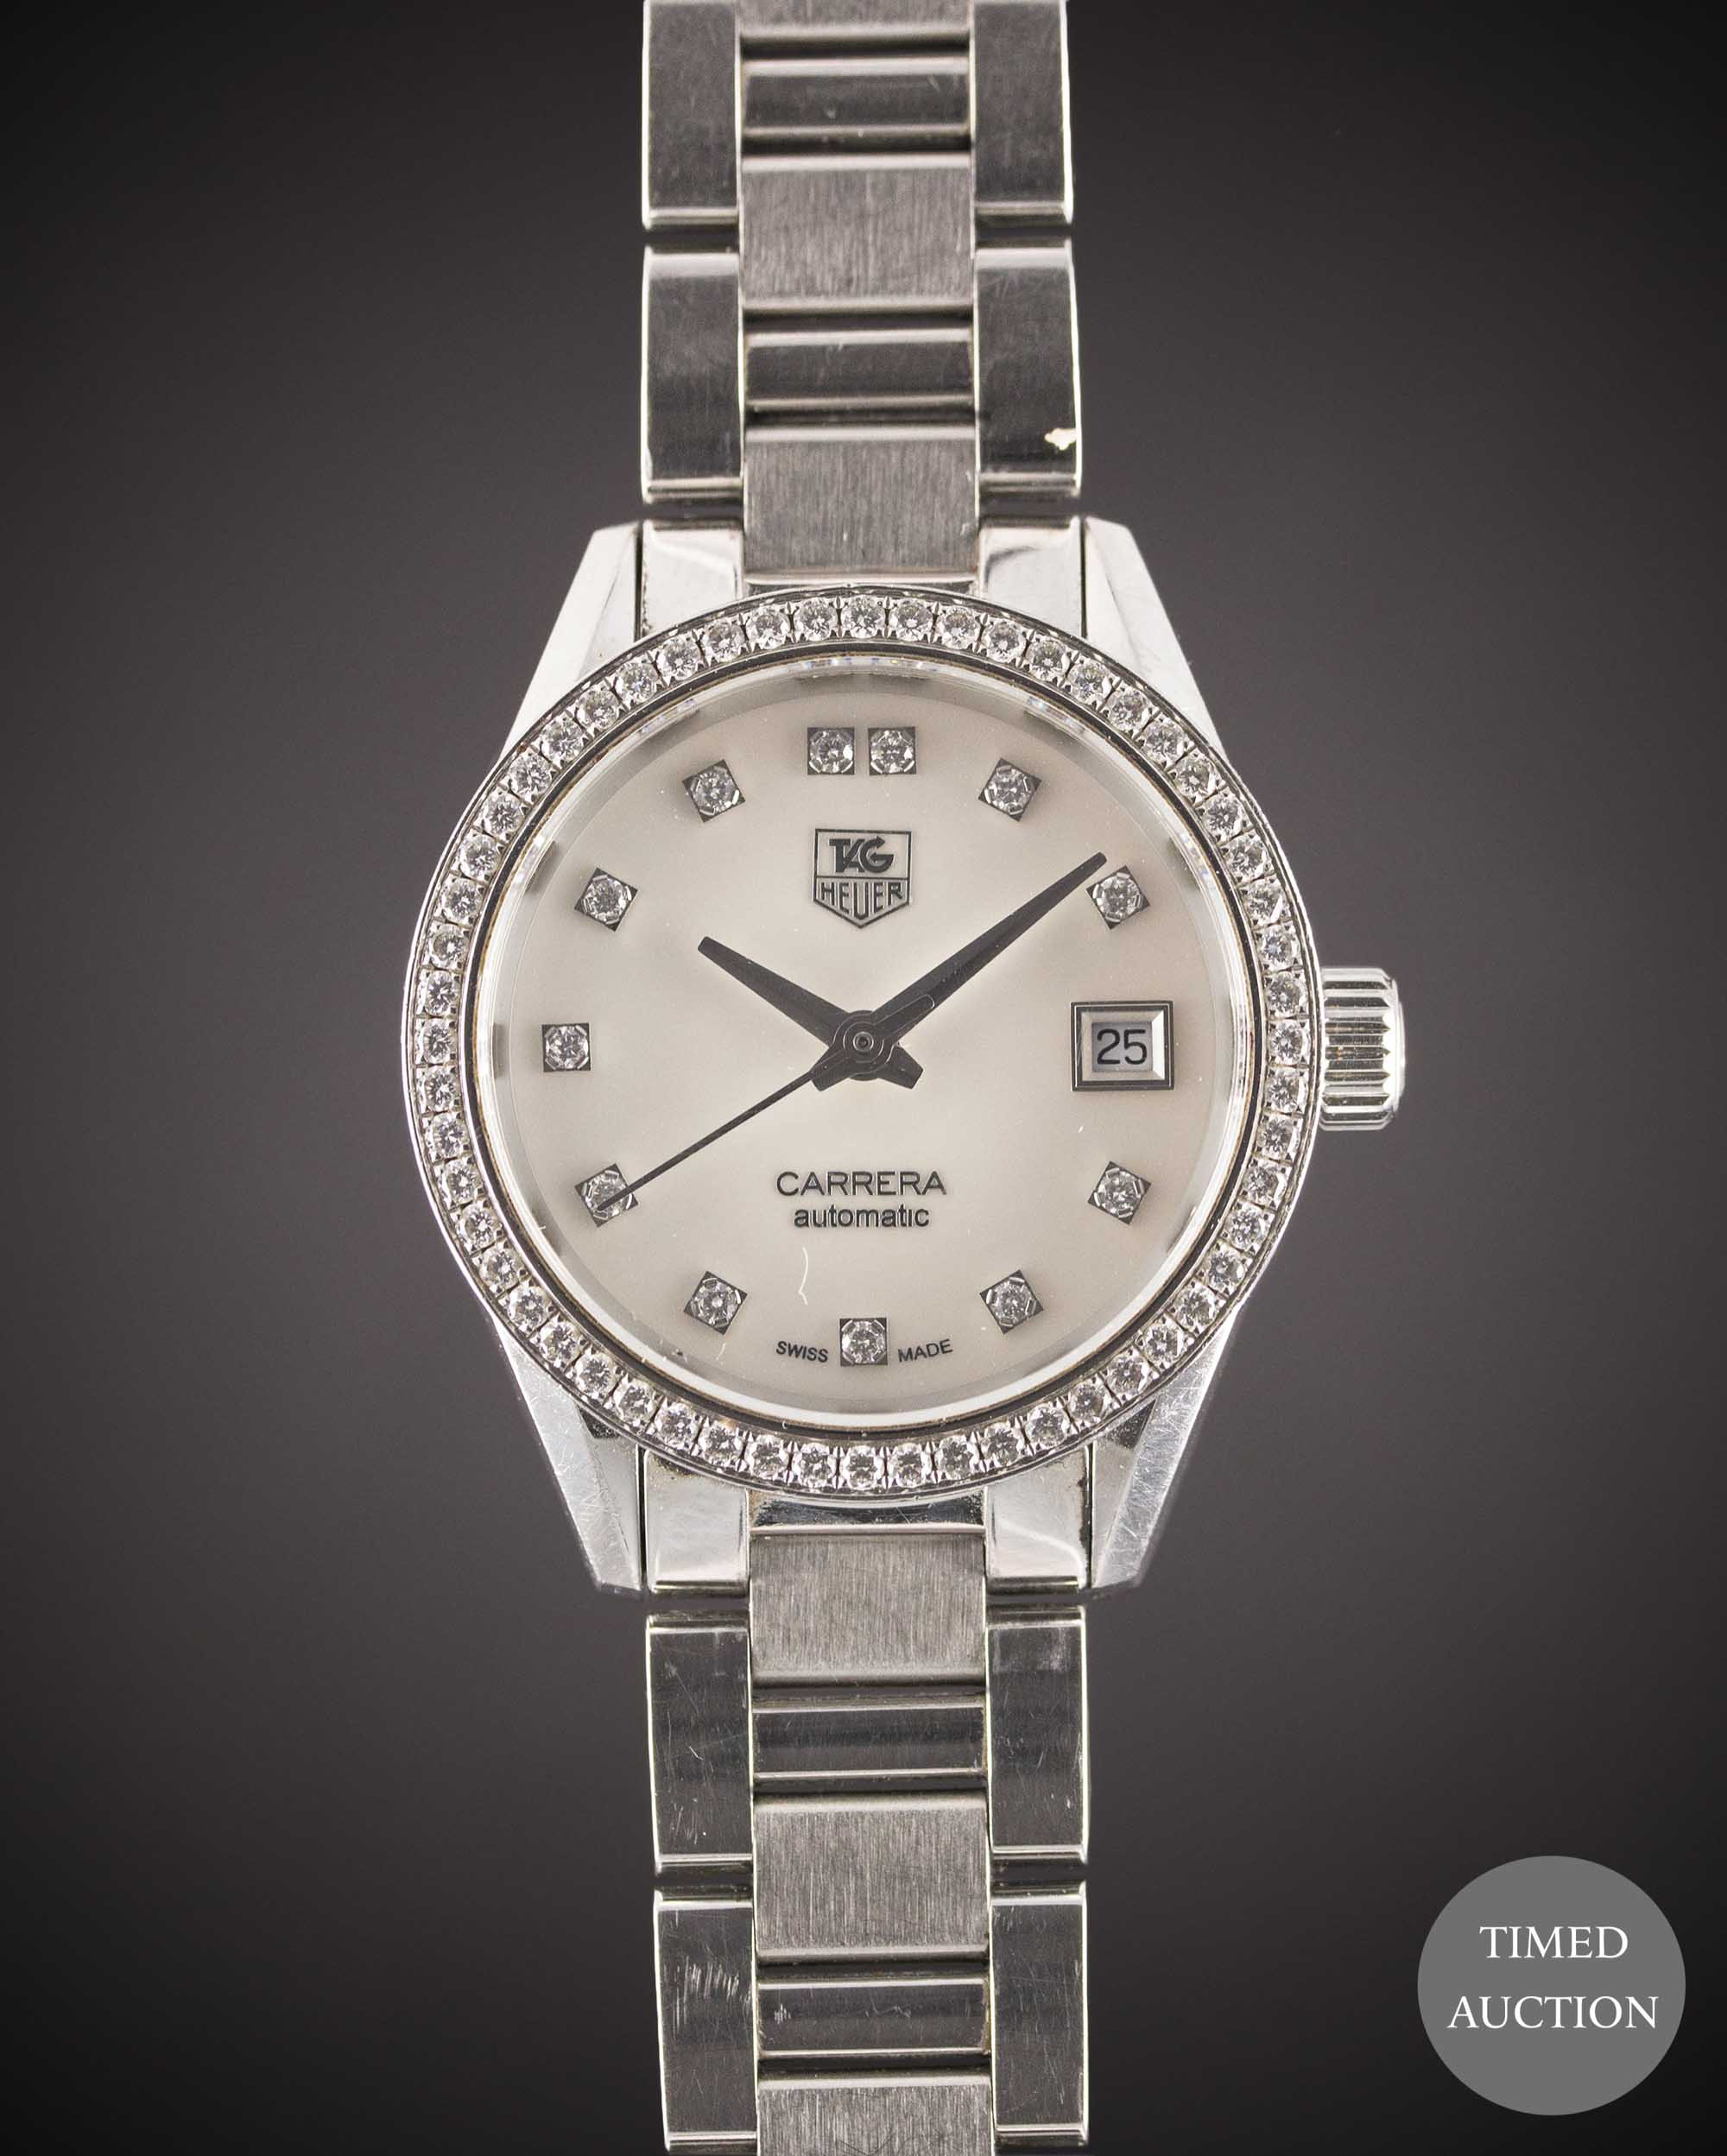 Lot 35 - A LADIES STAINLESS STEEL & DIAMOND TAG HEUER CARRERA CALIBRE 9 AUTOMATIC BRACELET WATCH CIRCA